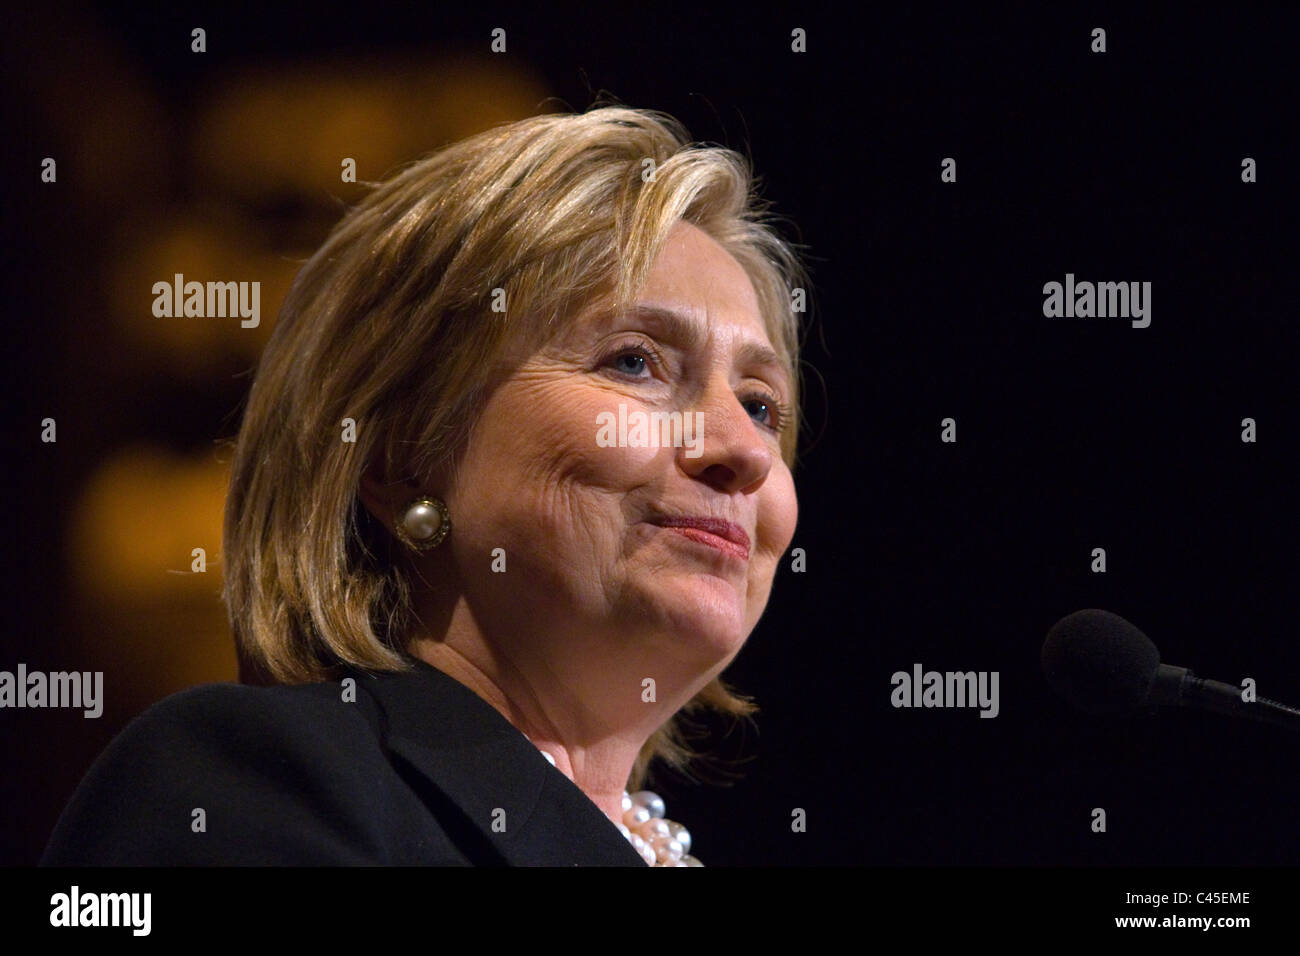 United States' Secretary of State Hillary Clinton makes a speech at the Pakistan American Association in New - Stock Image